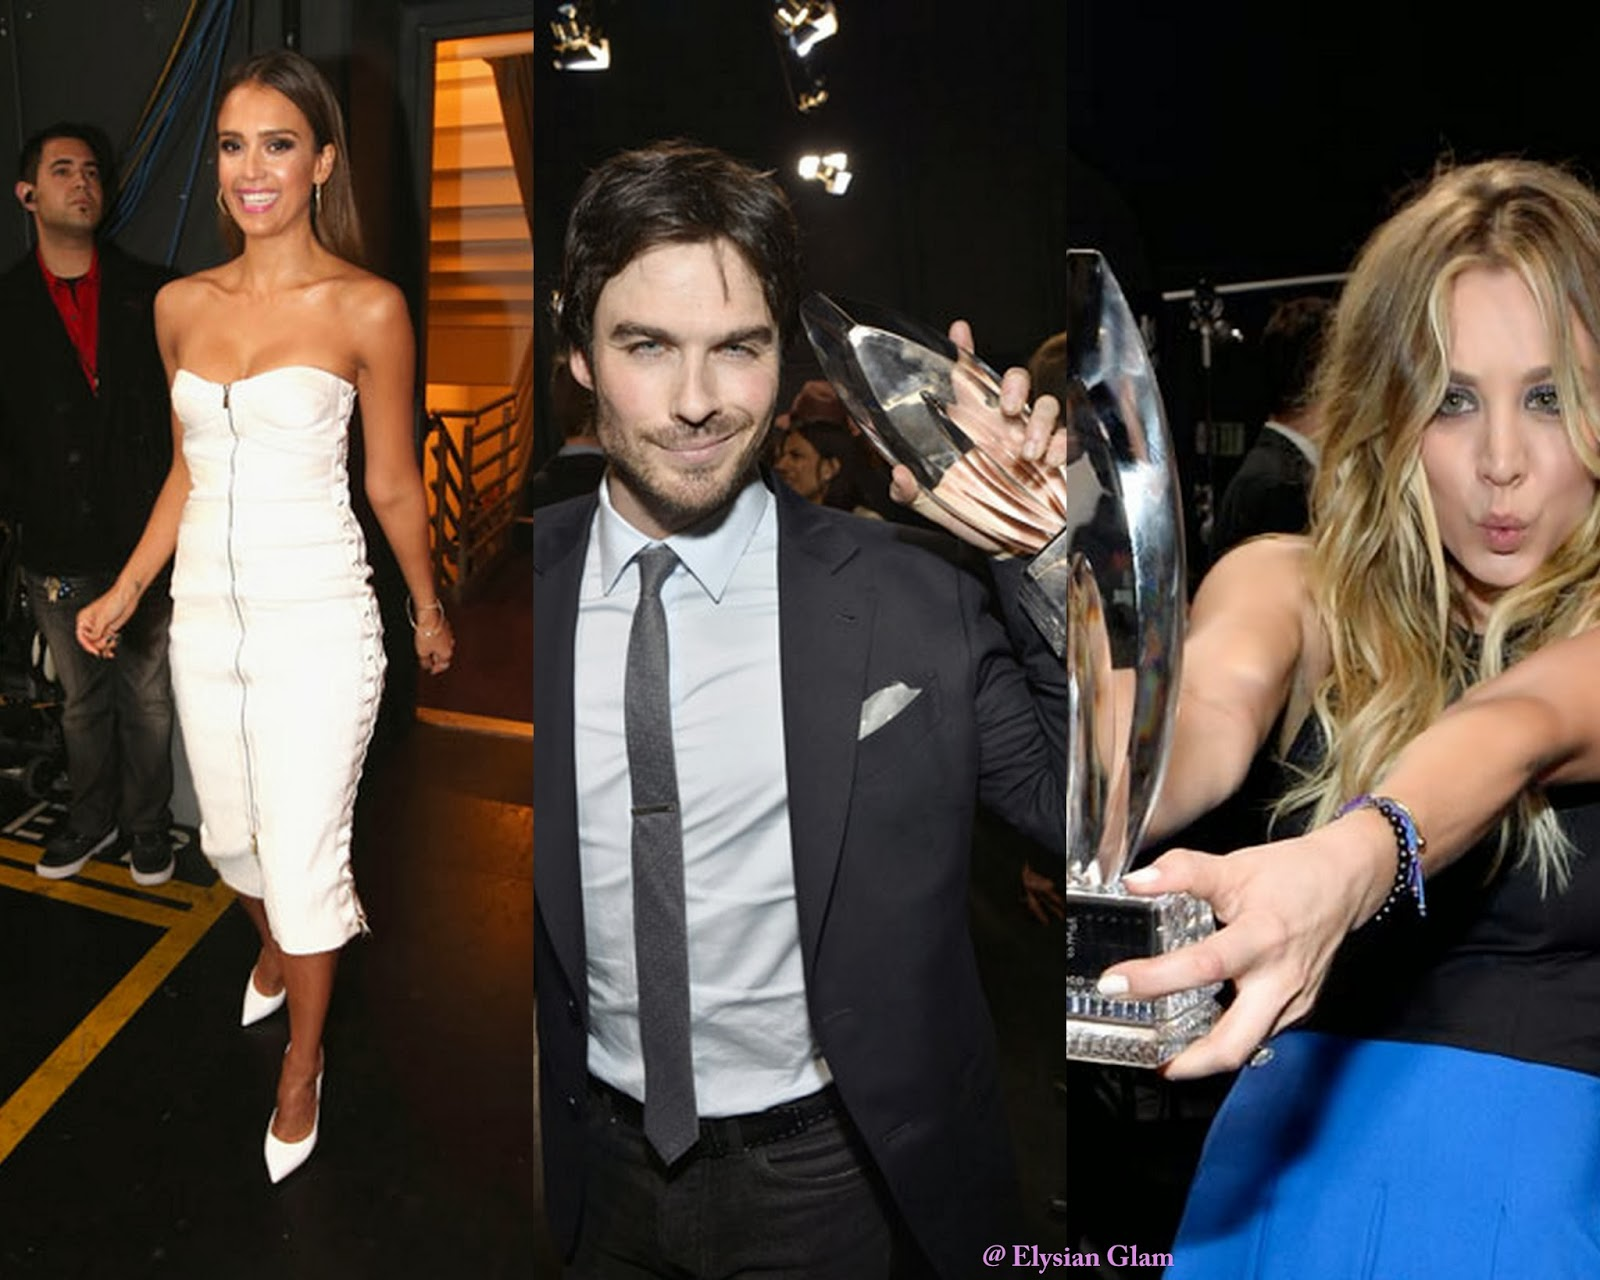 Hot Celebrities: Jessica Alba - Ian Somerhalder - Kaley Cuoco